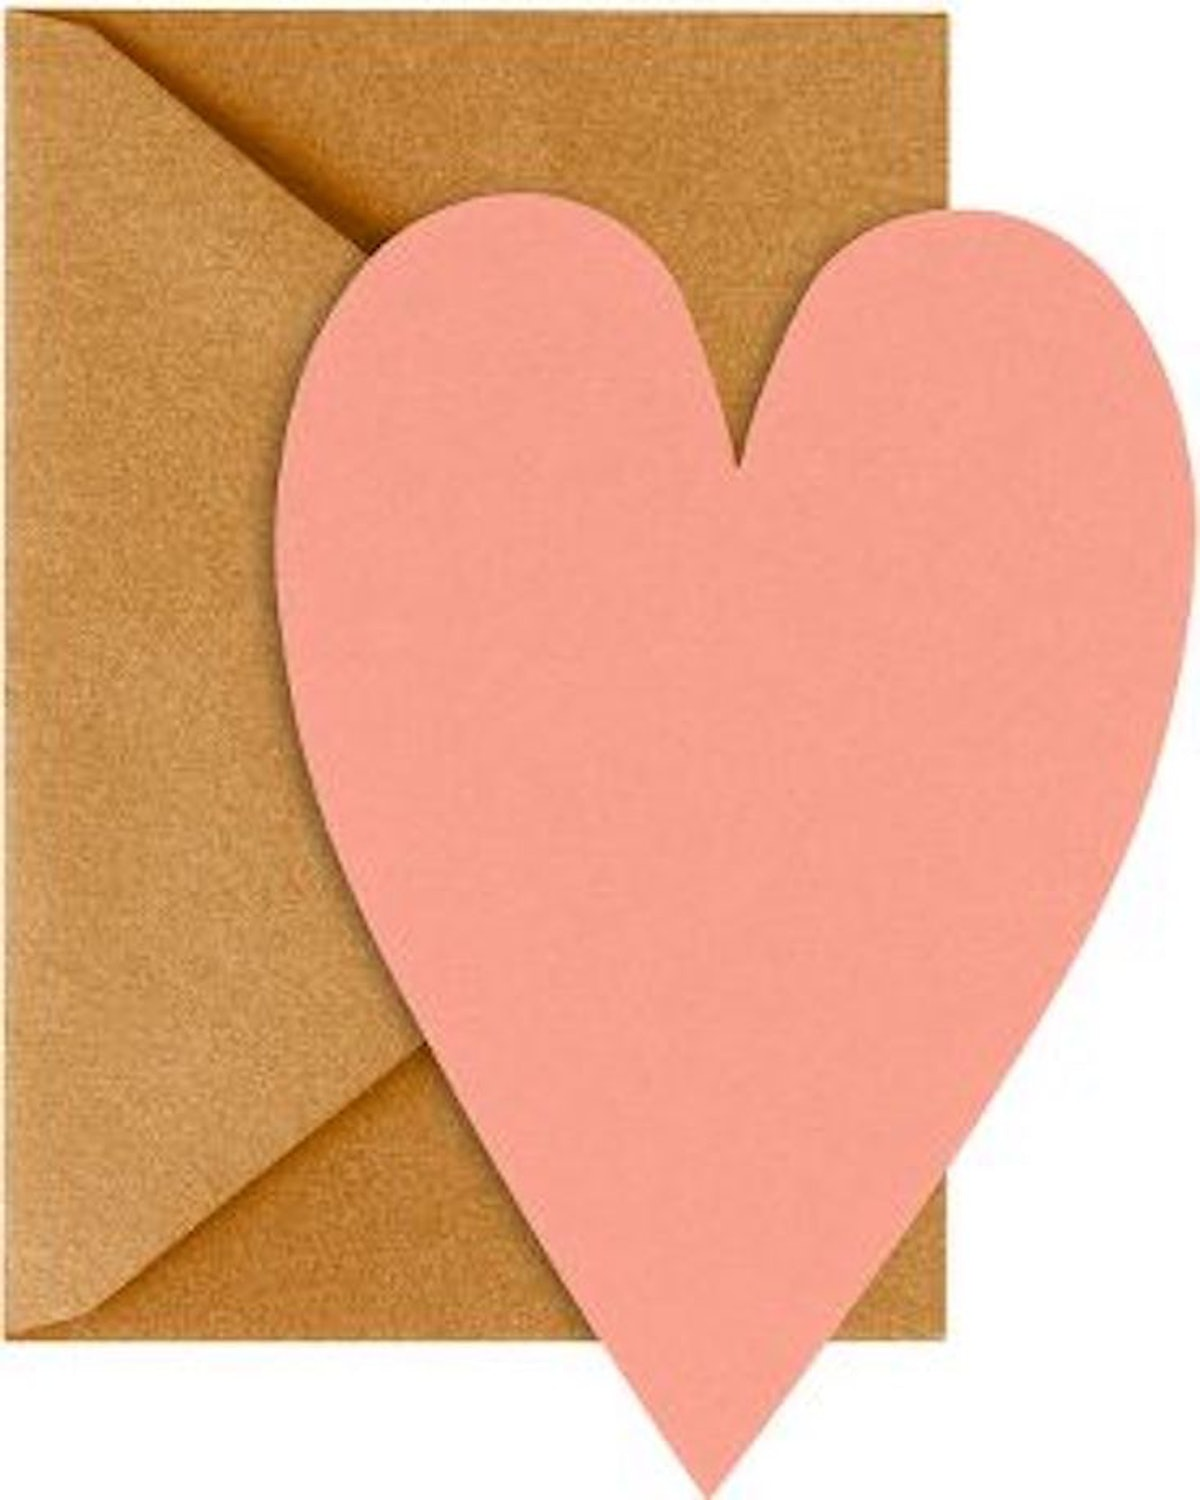 Coral Heart Cards with Antique Gold Envelopes, Set of 10